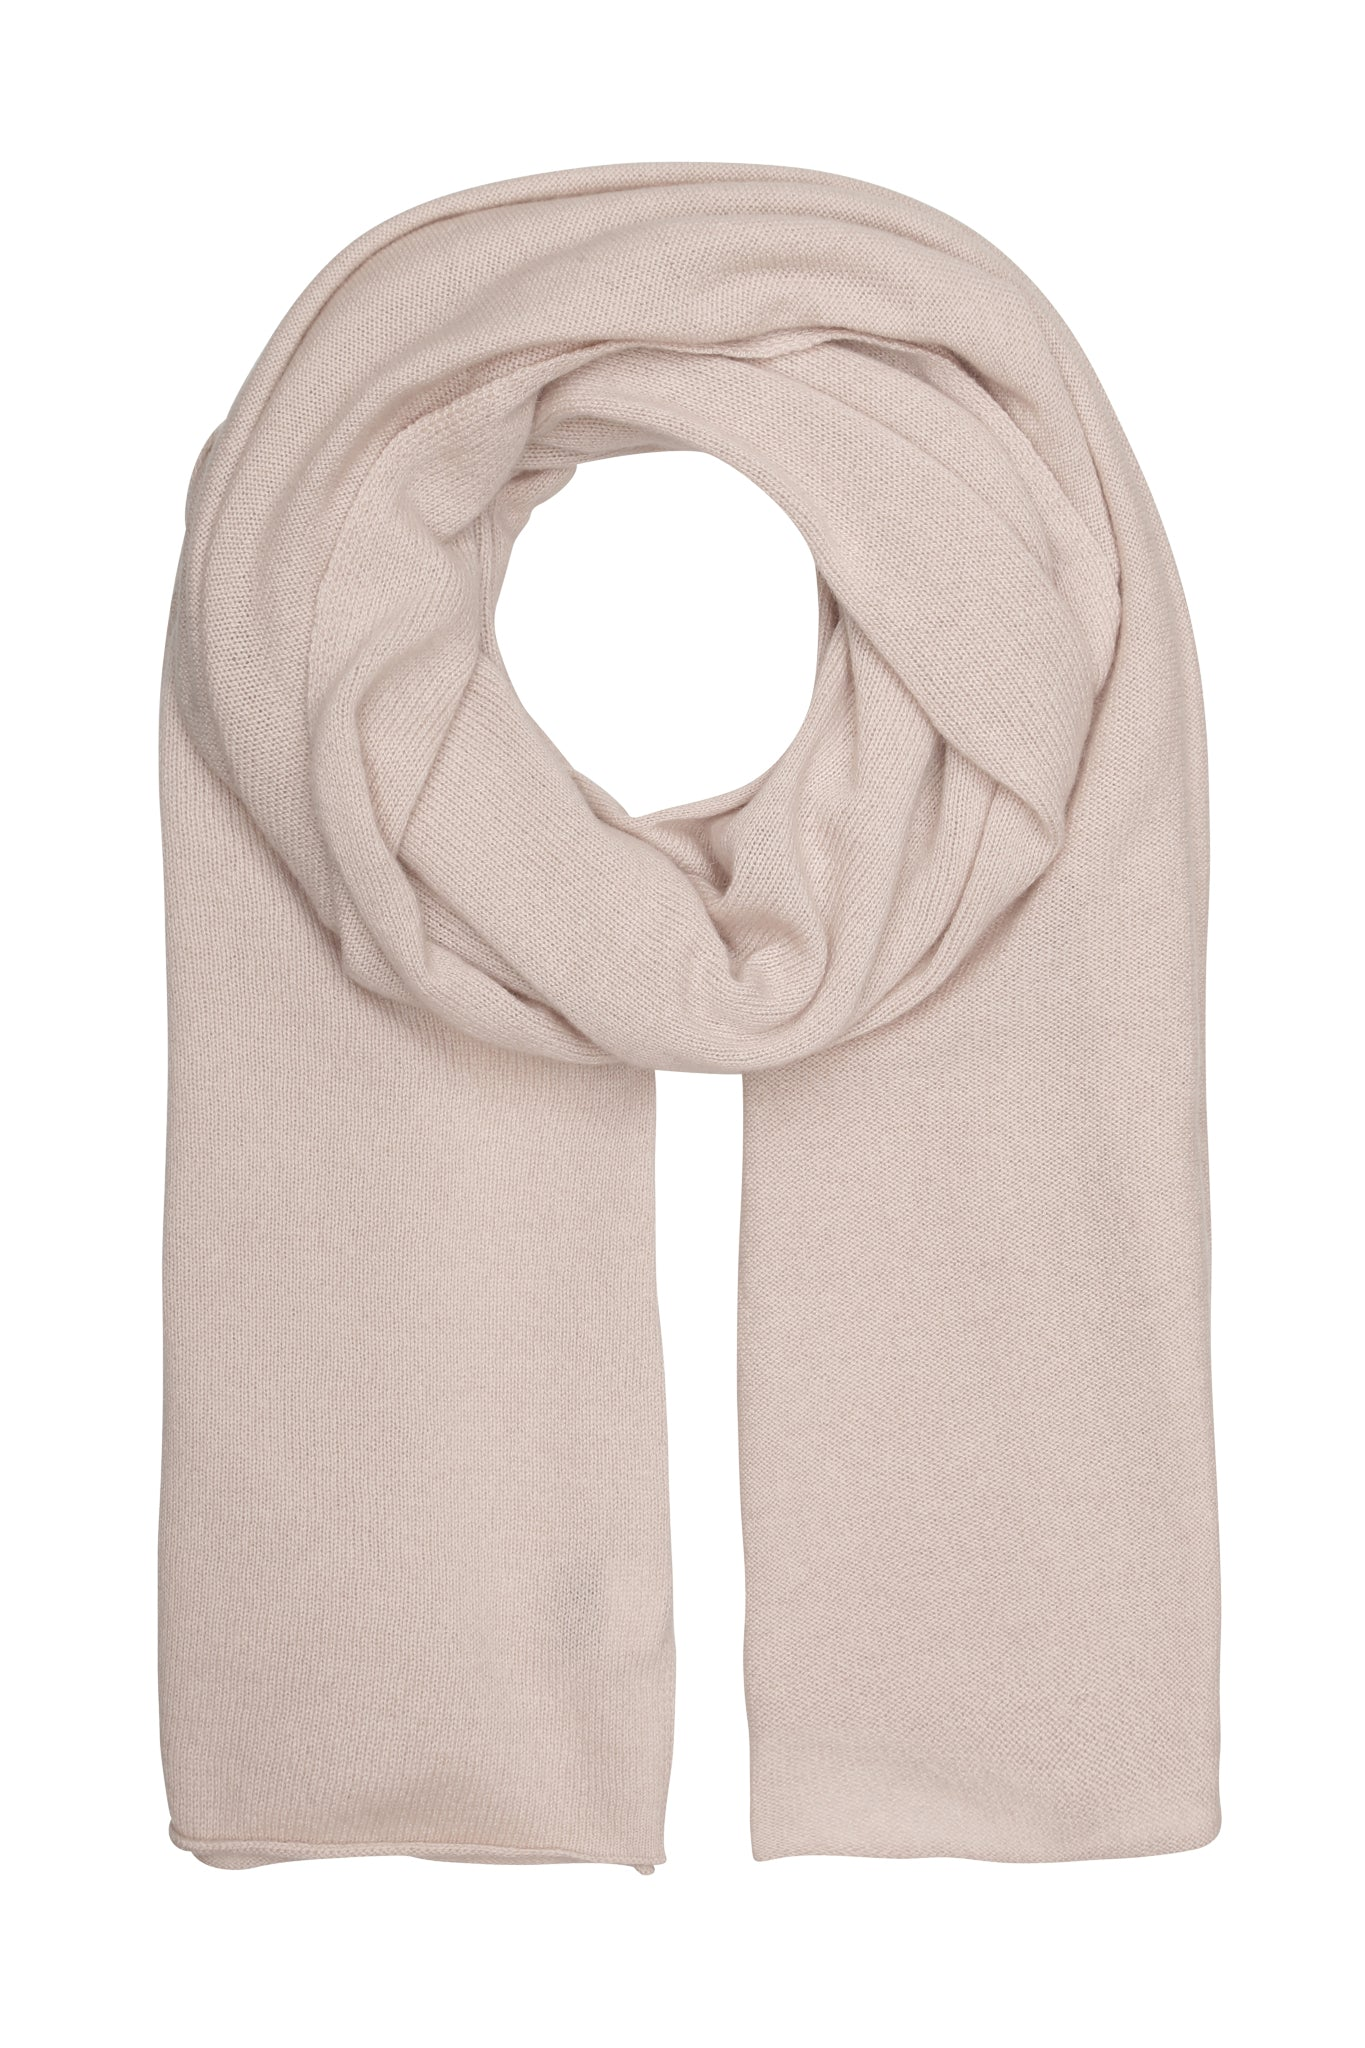 Bea - kæmpetørklæde i cashmere Made in Italy - Dusty Rose